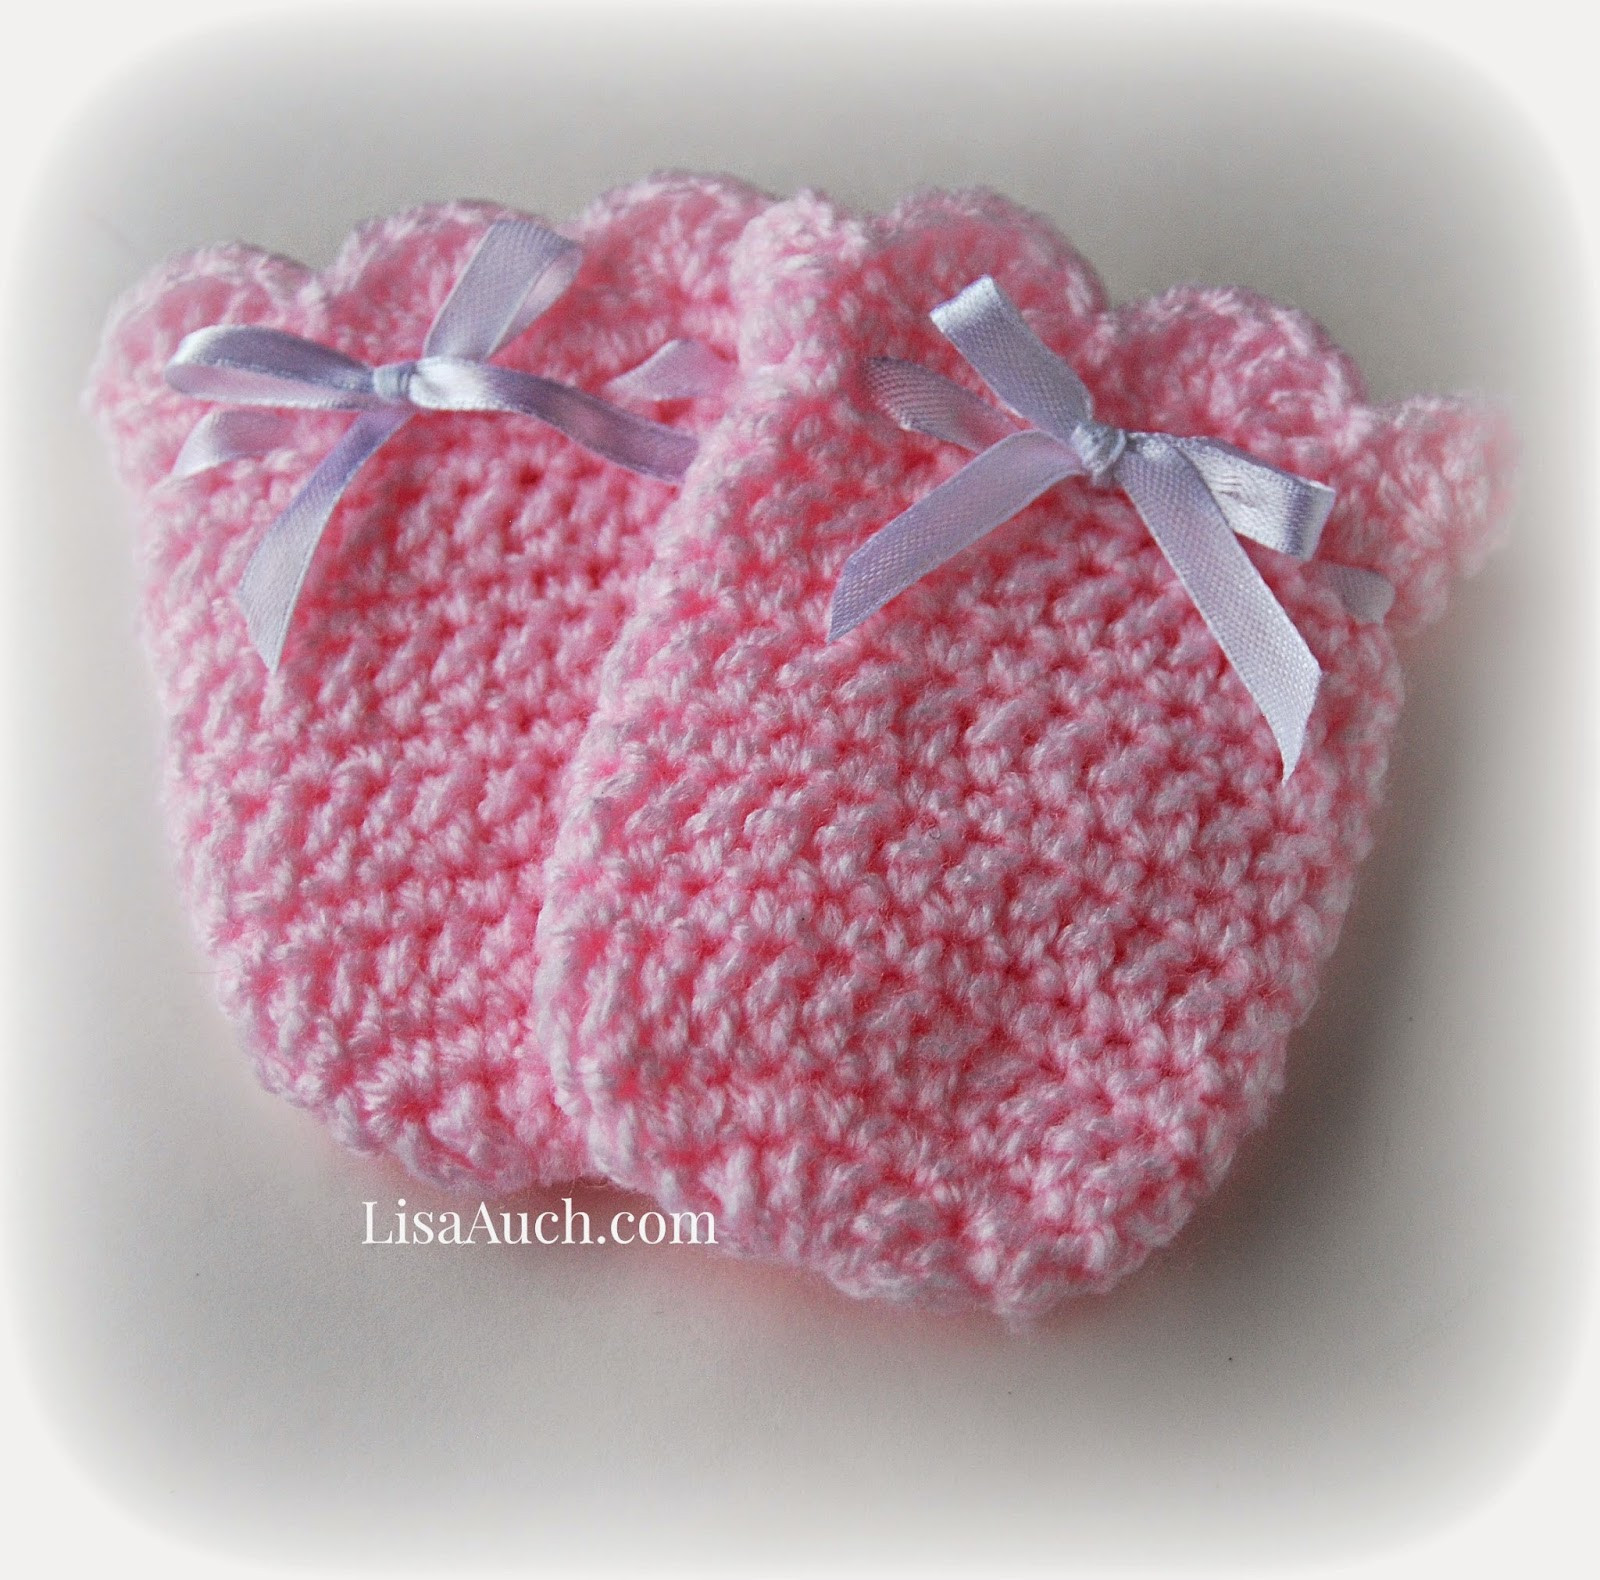 Beautiful Crochet Baby Mittens Crochet Baby Mittens Of Incredible 49 Photos Crochet Baby Mittens